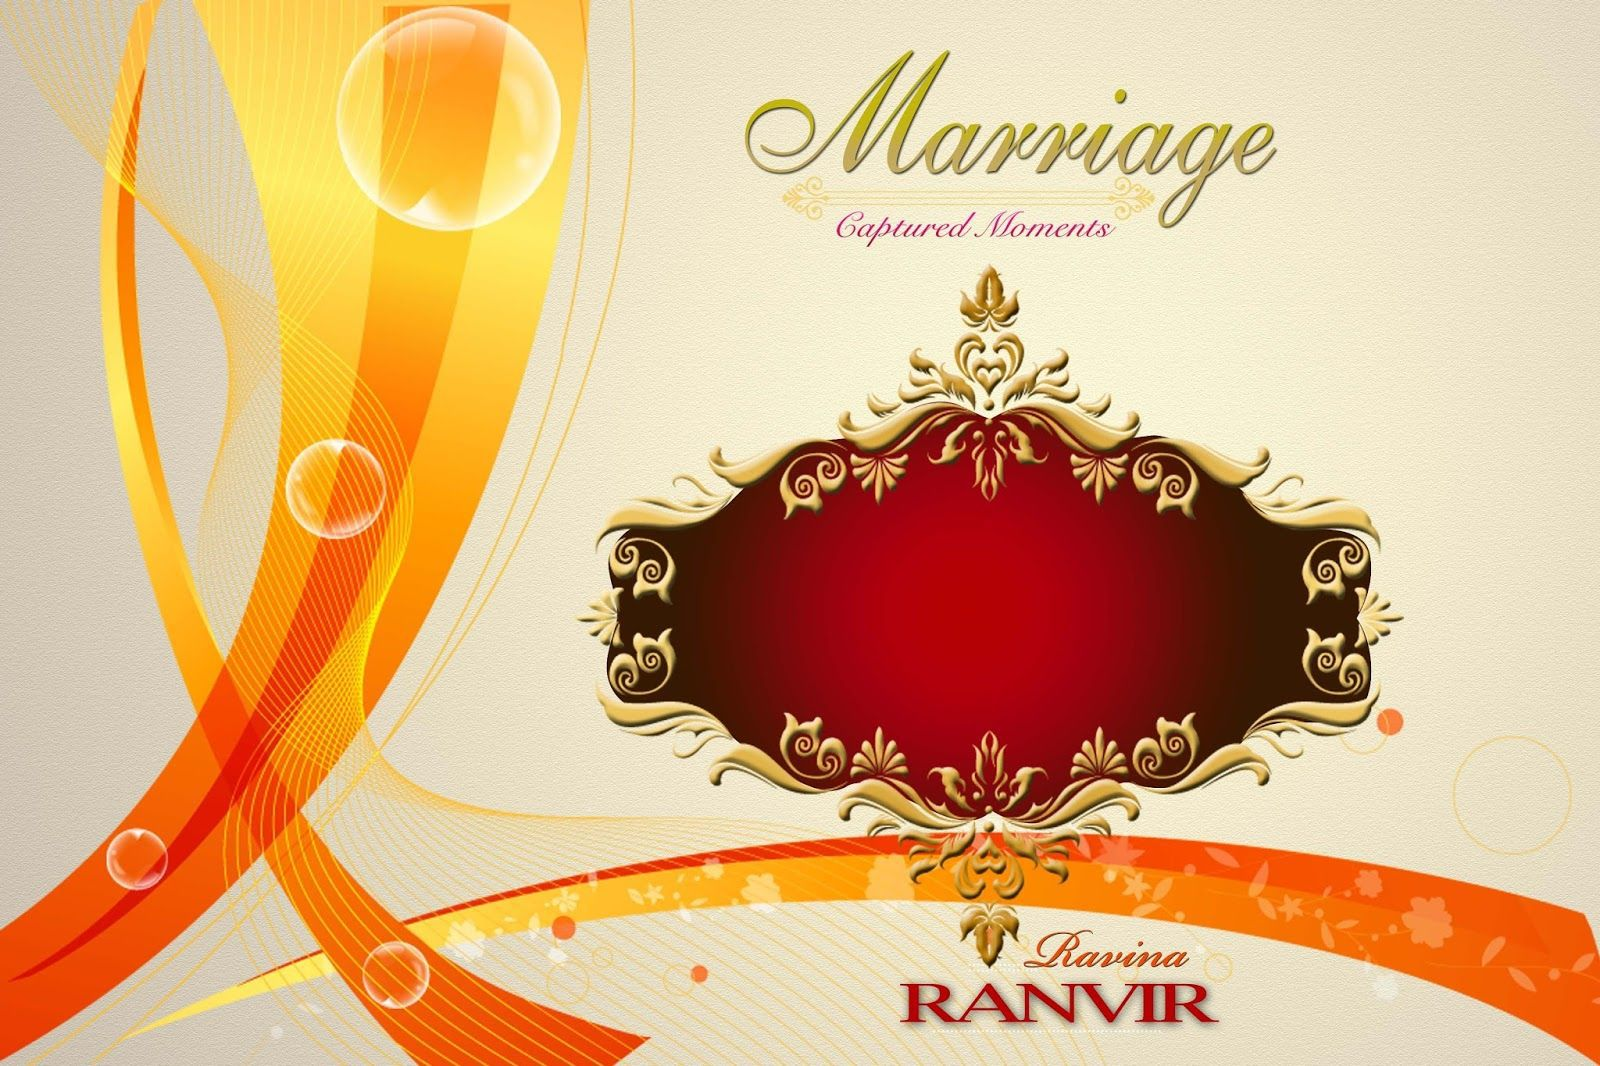 005 Best Wedding Cd Cover Design Template Free Download Concept Full